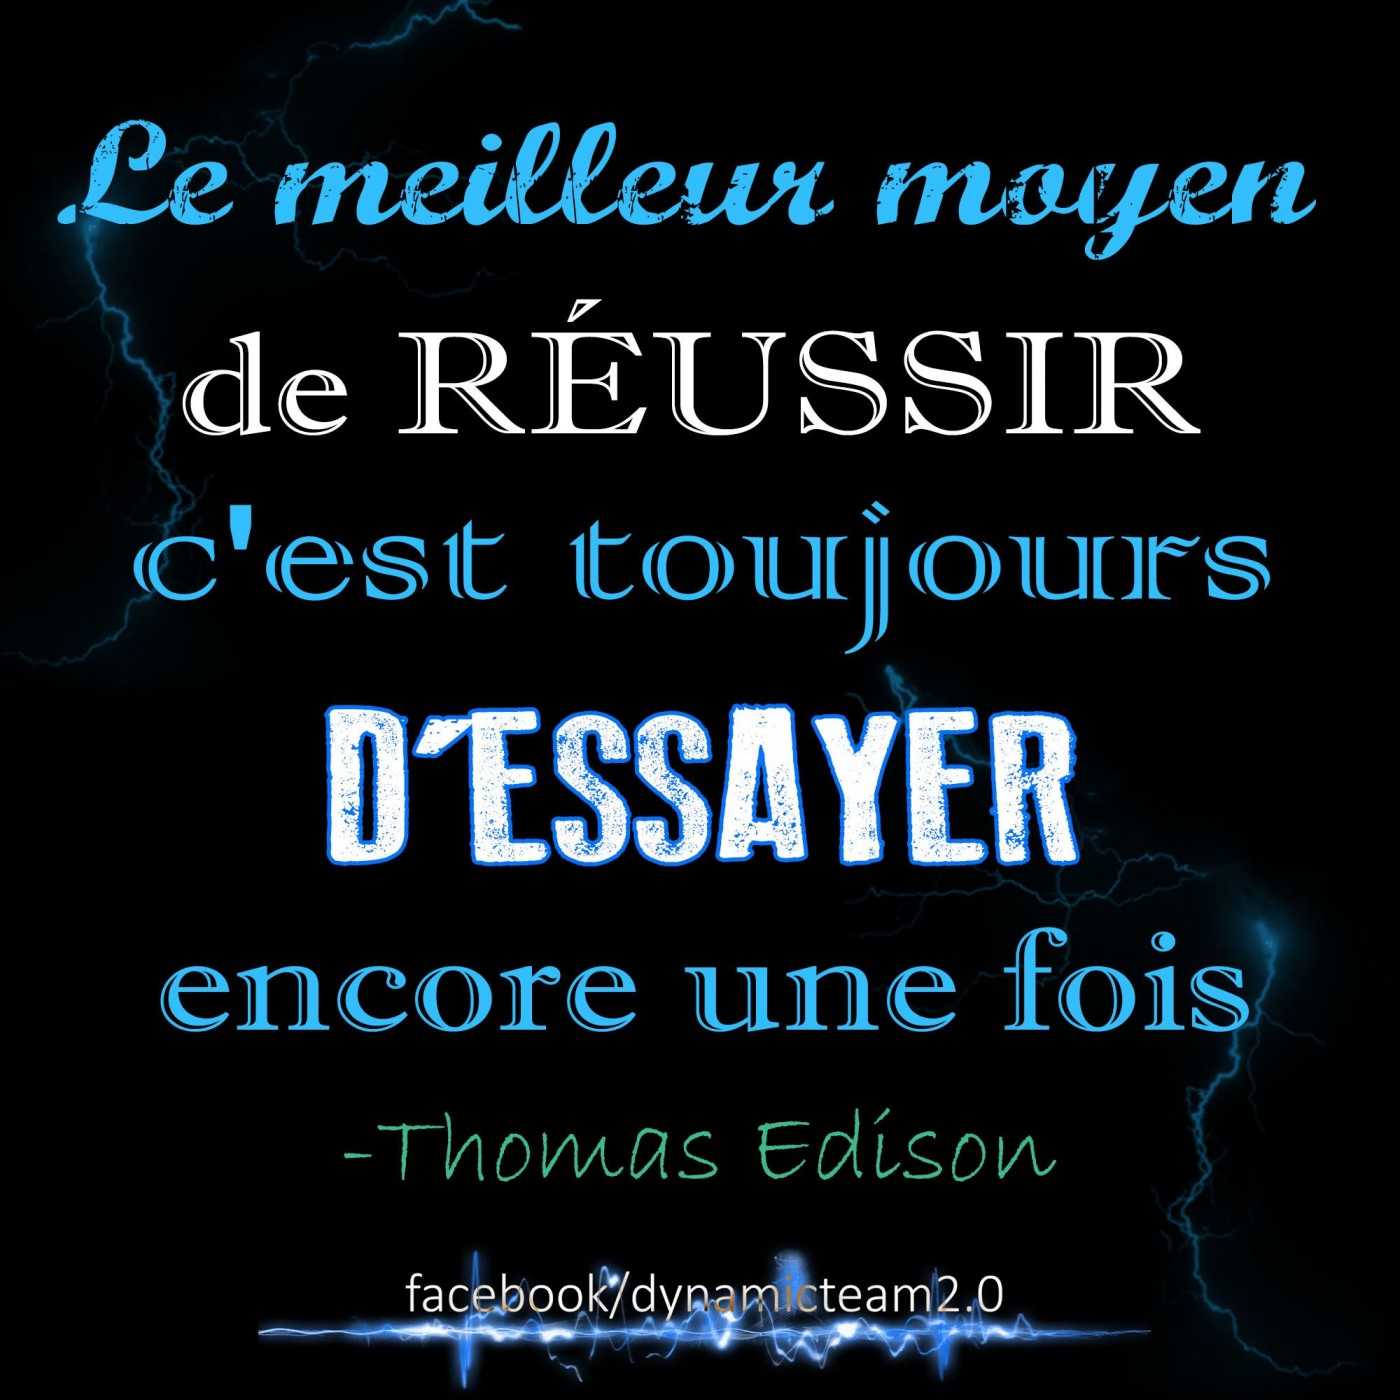 003 Essayer Essay Impressive French Verb Conjugation Definition Synonymes In English 1400